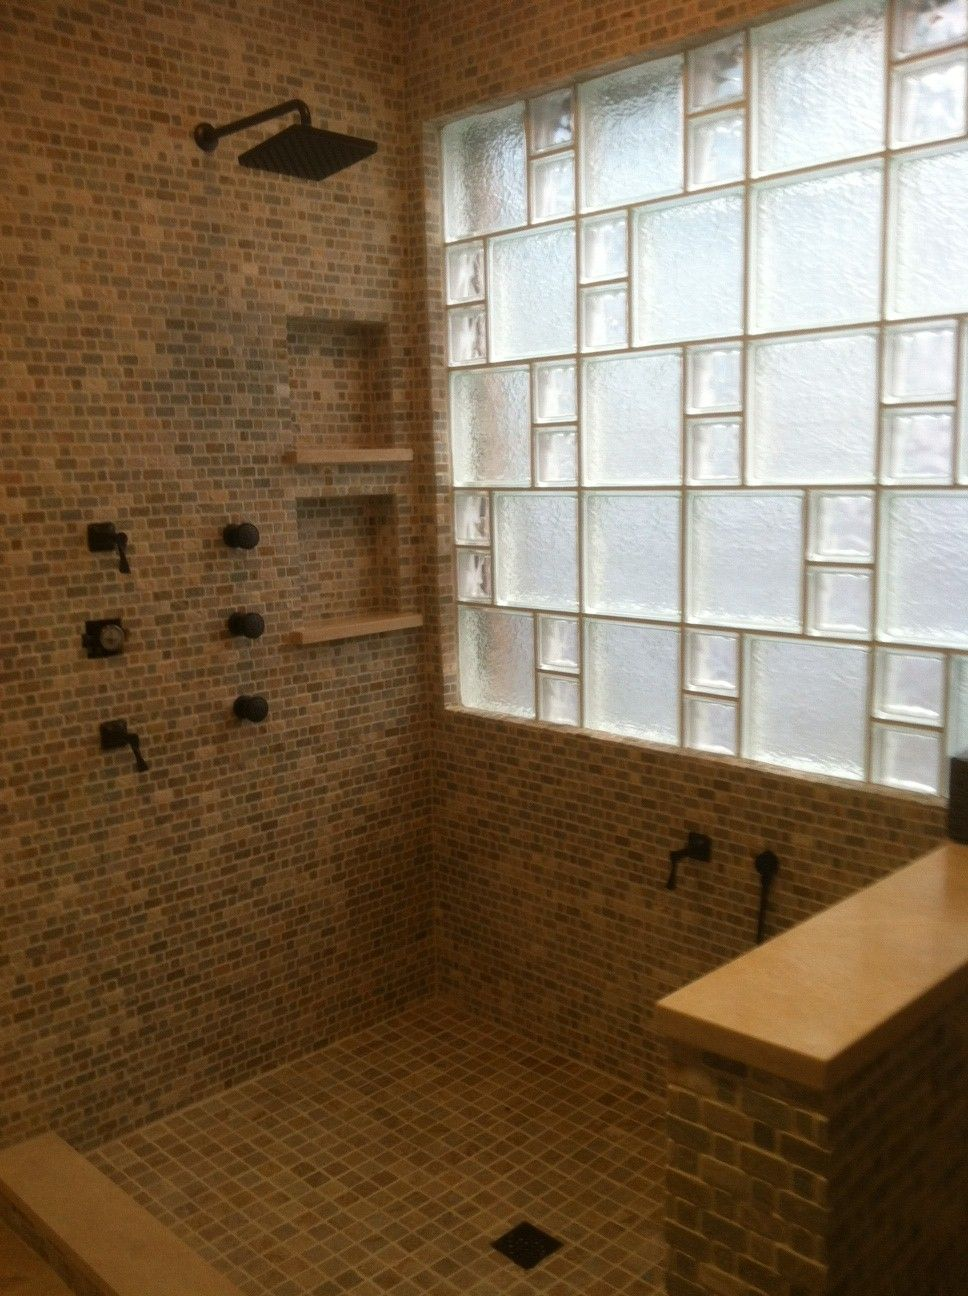 Glass Blocks For Beautiful Bathroom Windows Houston Glass Block Glass Block Shower Window In Shower Glass Block Windows